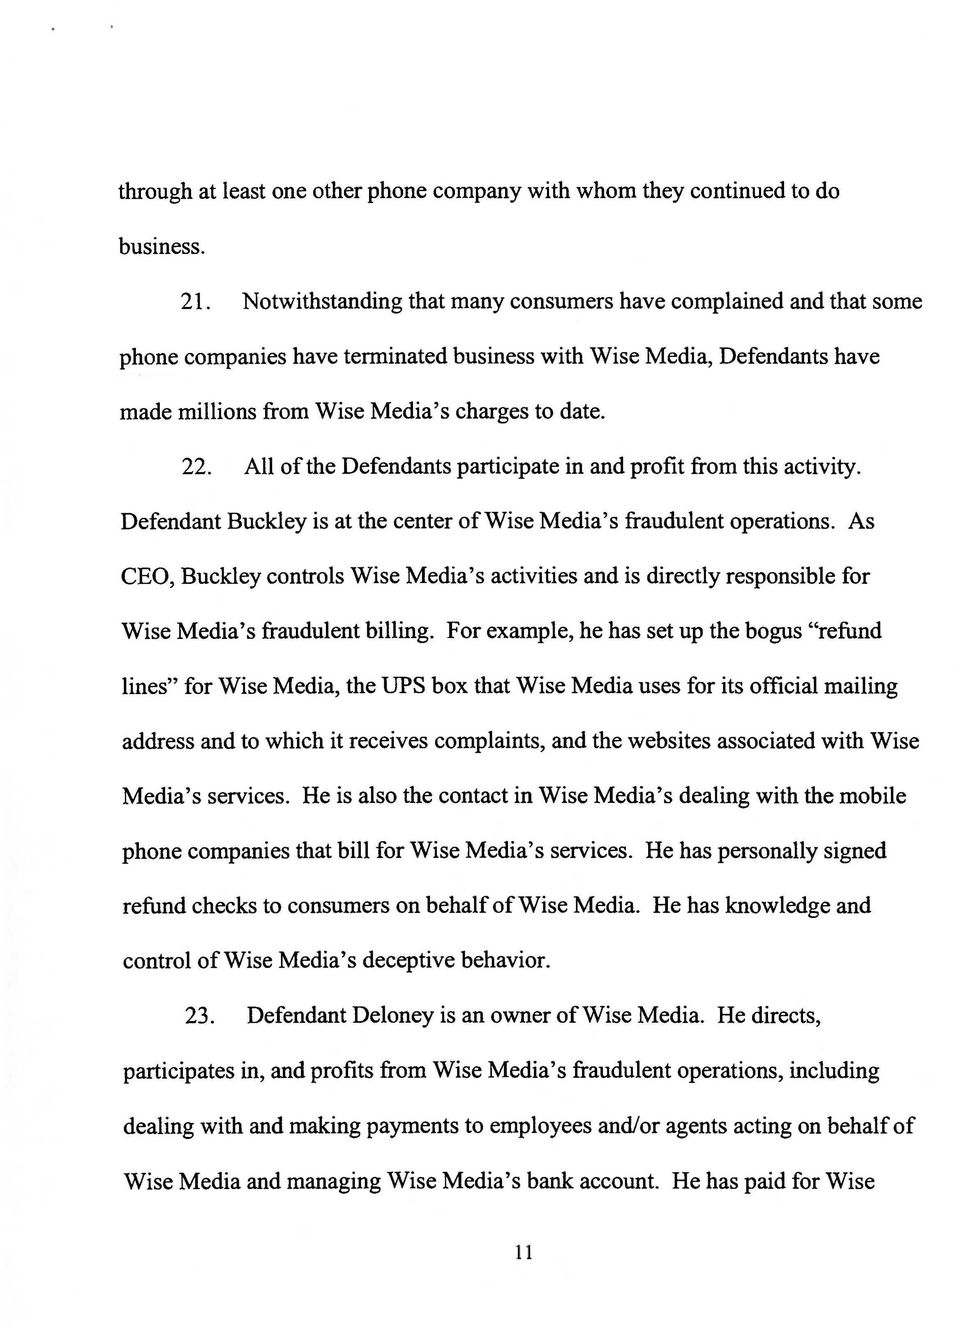 All of the Defendants participate in and profit from this activity. Defendant Buckley is at the center of Wise Media's fraudulent operations.